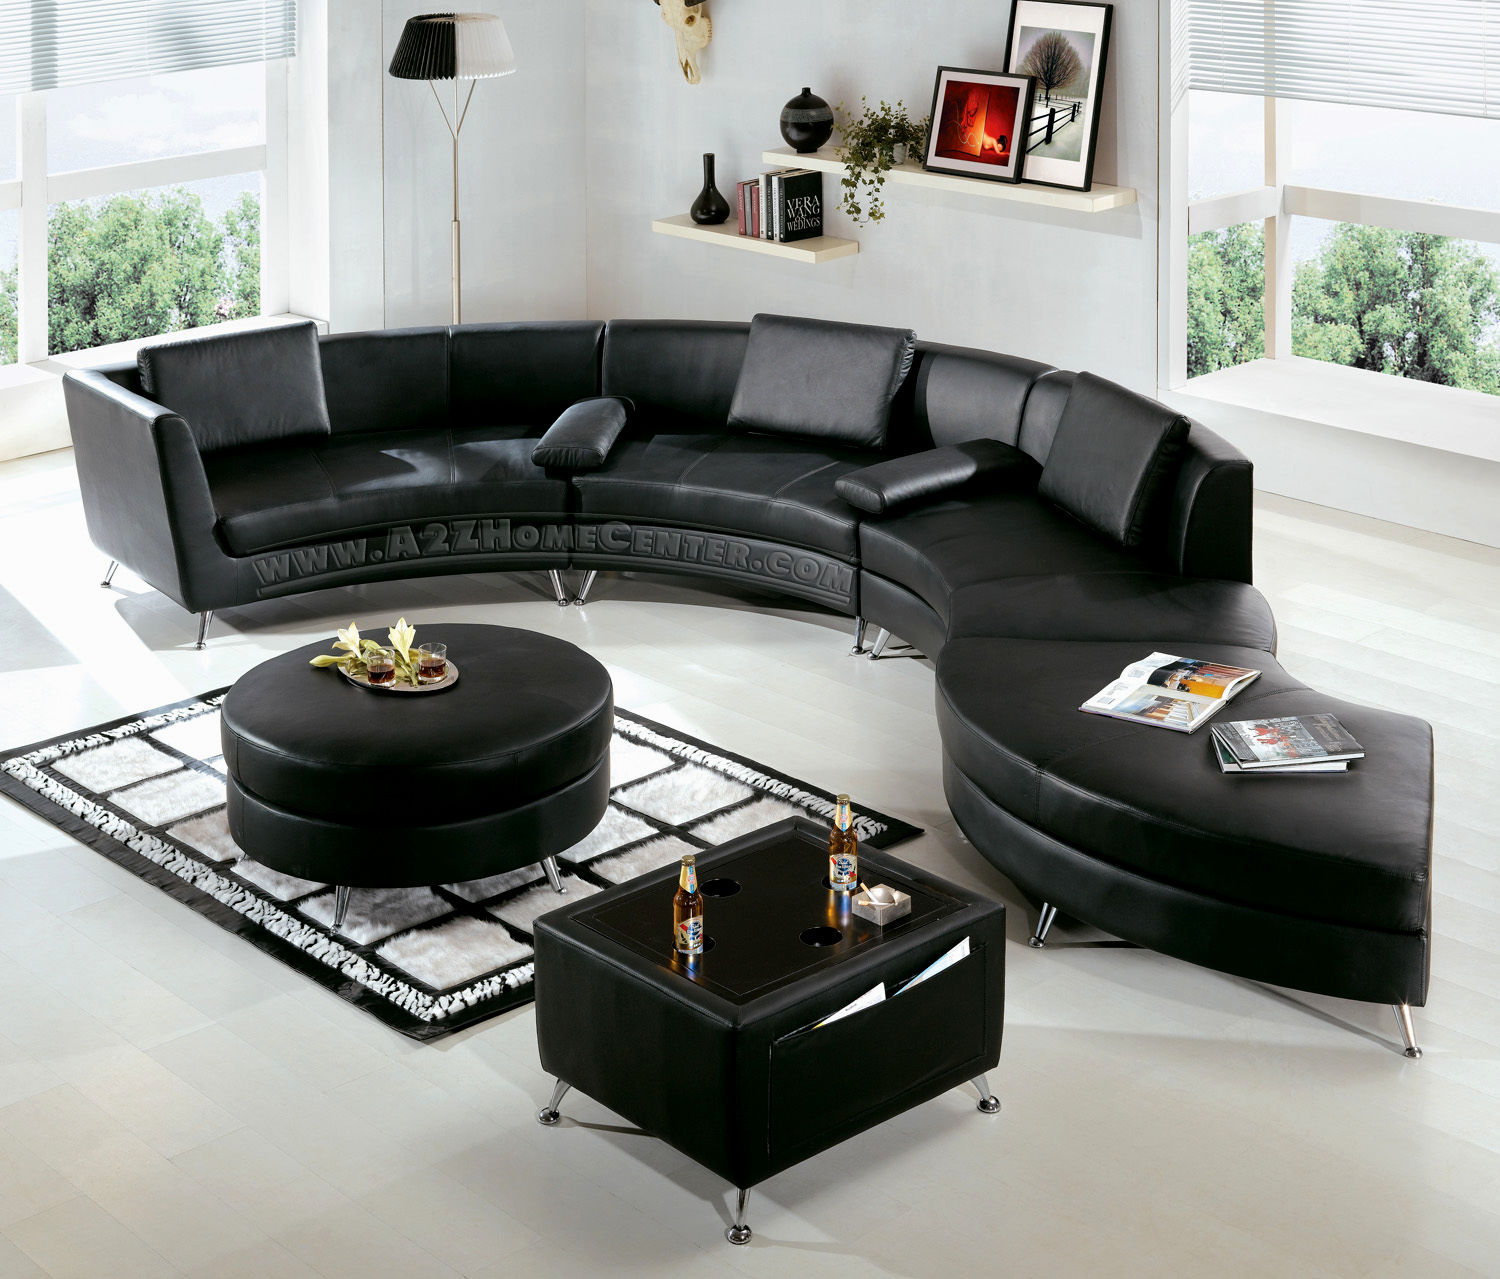 fancy lazy boy sectional sofas architecture-Incredible Lazy Boy Sectional sofas Décor